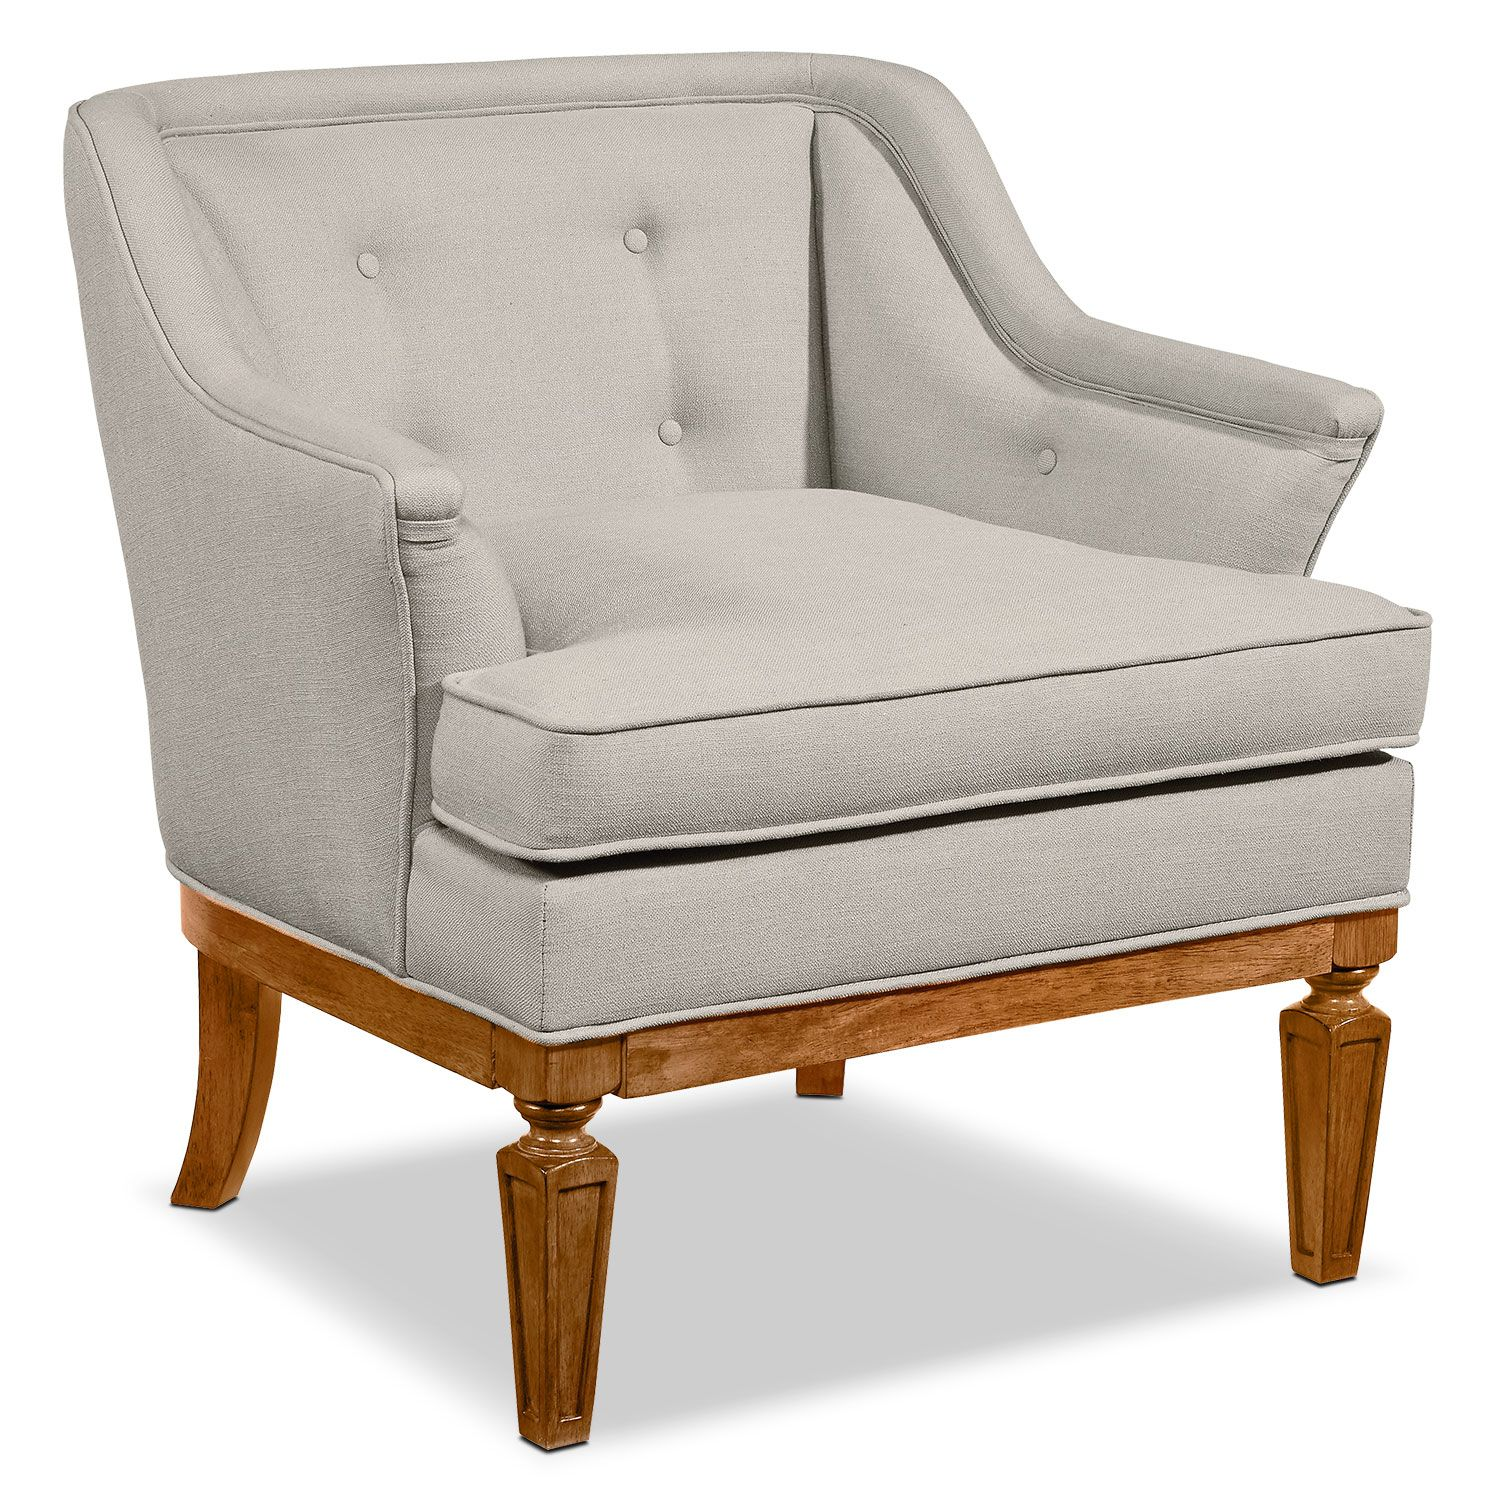 American Signature Furniture Com: So Comfy You Will Want This Tub-shaped Cotillion Accent